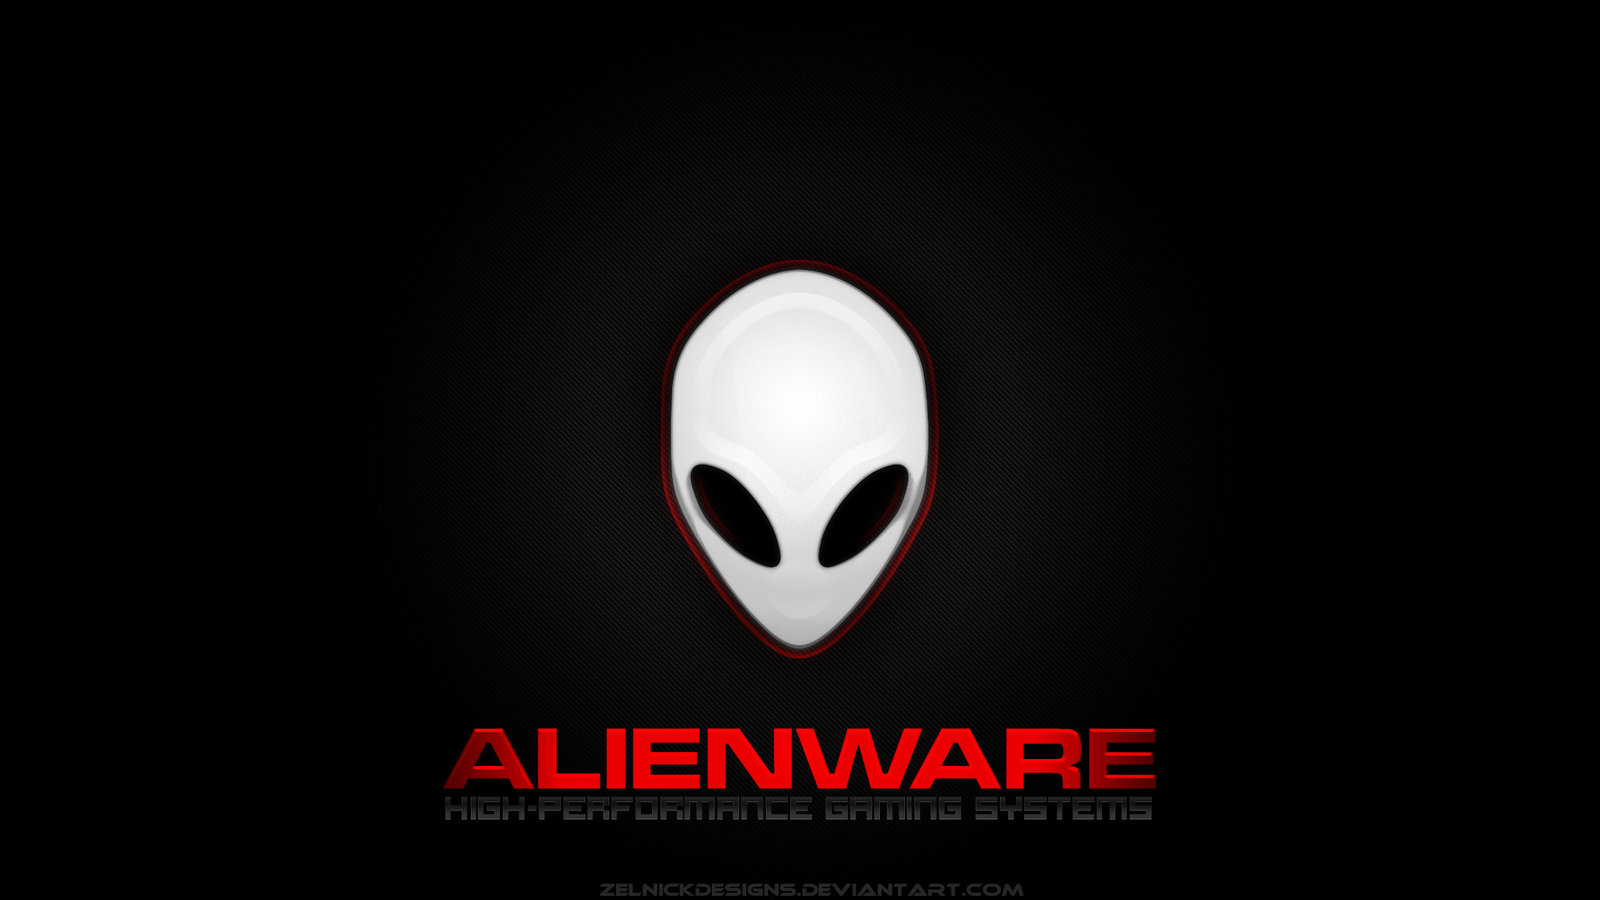 Alienware Wallpaper v1 Red by ZelnickDesigns on deviantART 1600x900